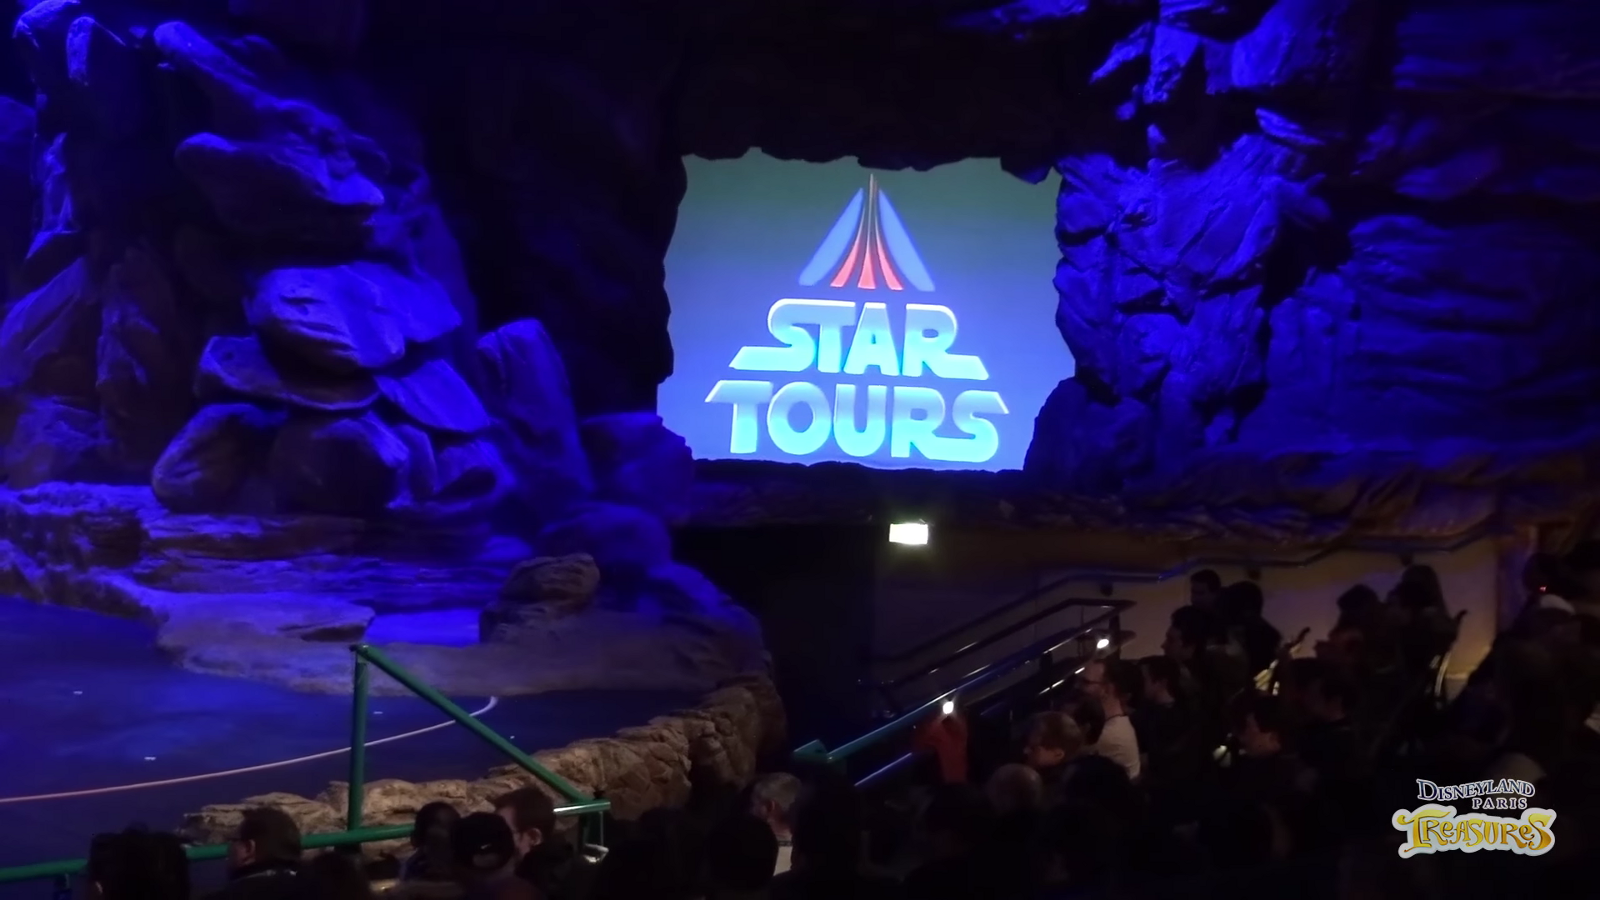 Im Pretty Sure That At The Time He Had No Idea How Much Was Going To Change Our Lives By Creating Such A Wonderful Attraction As Star Tours